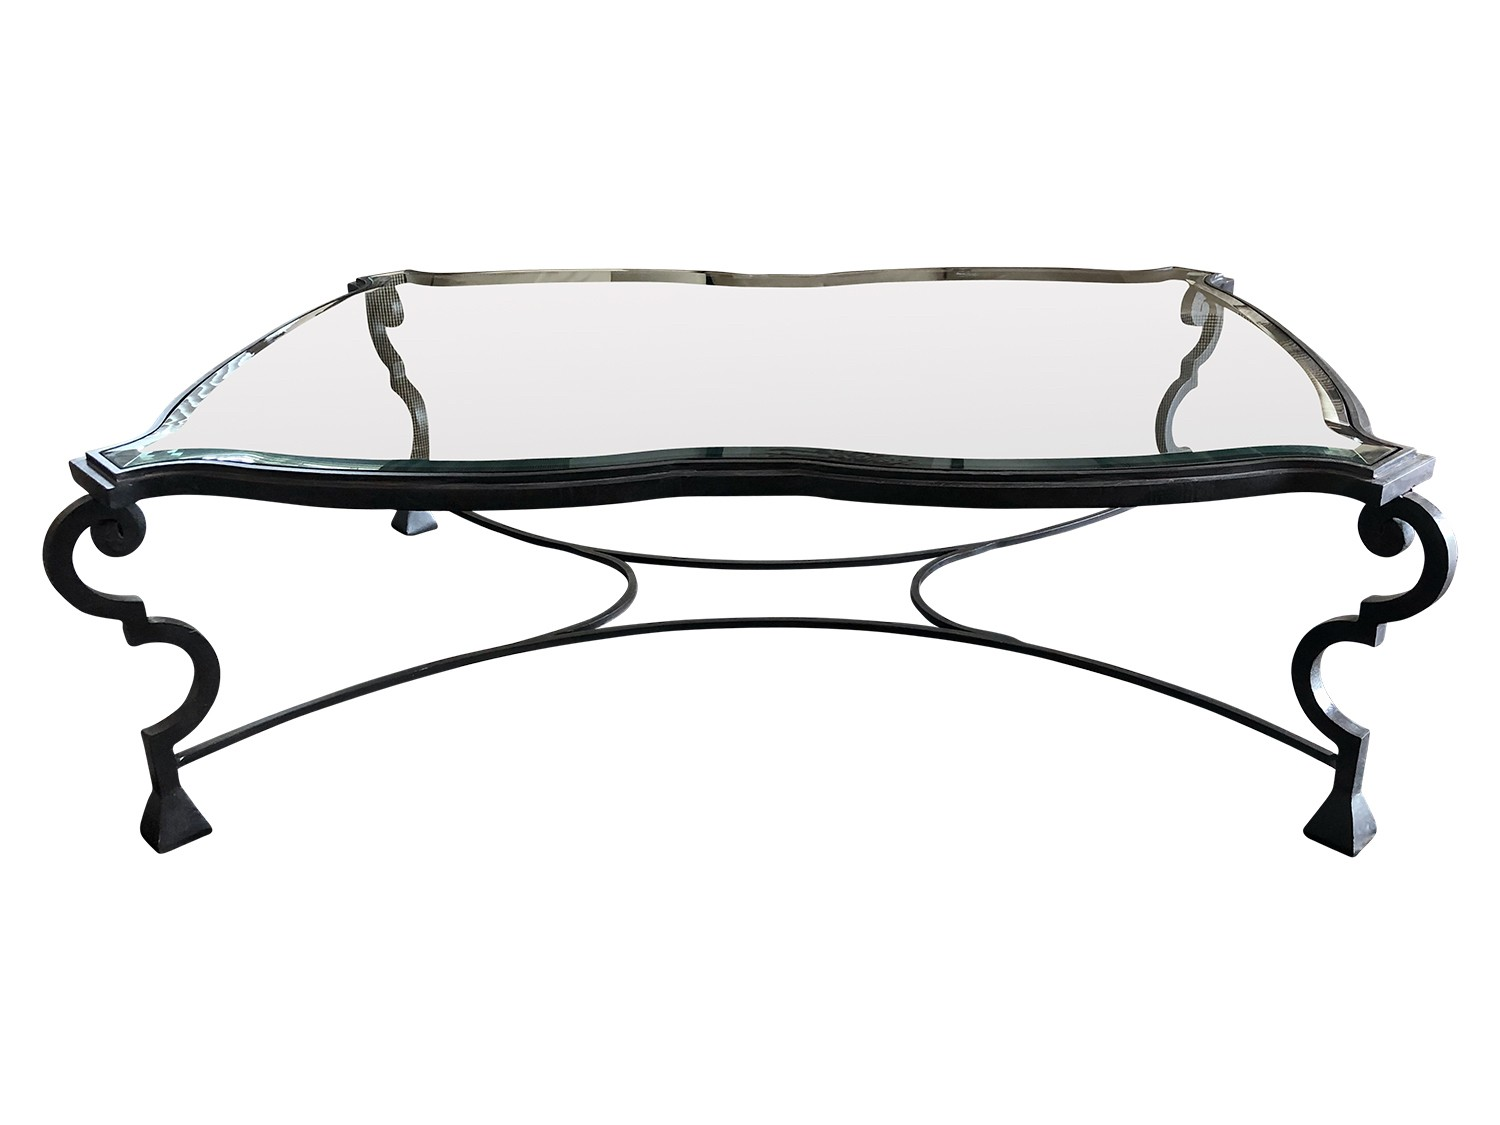 kreiss wrought iron and glass coffee table